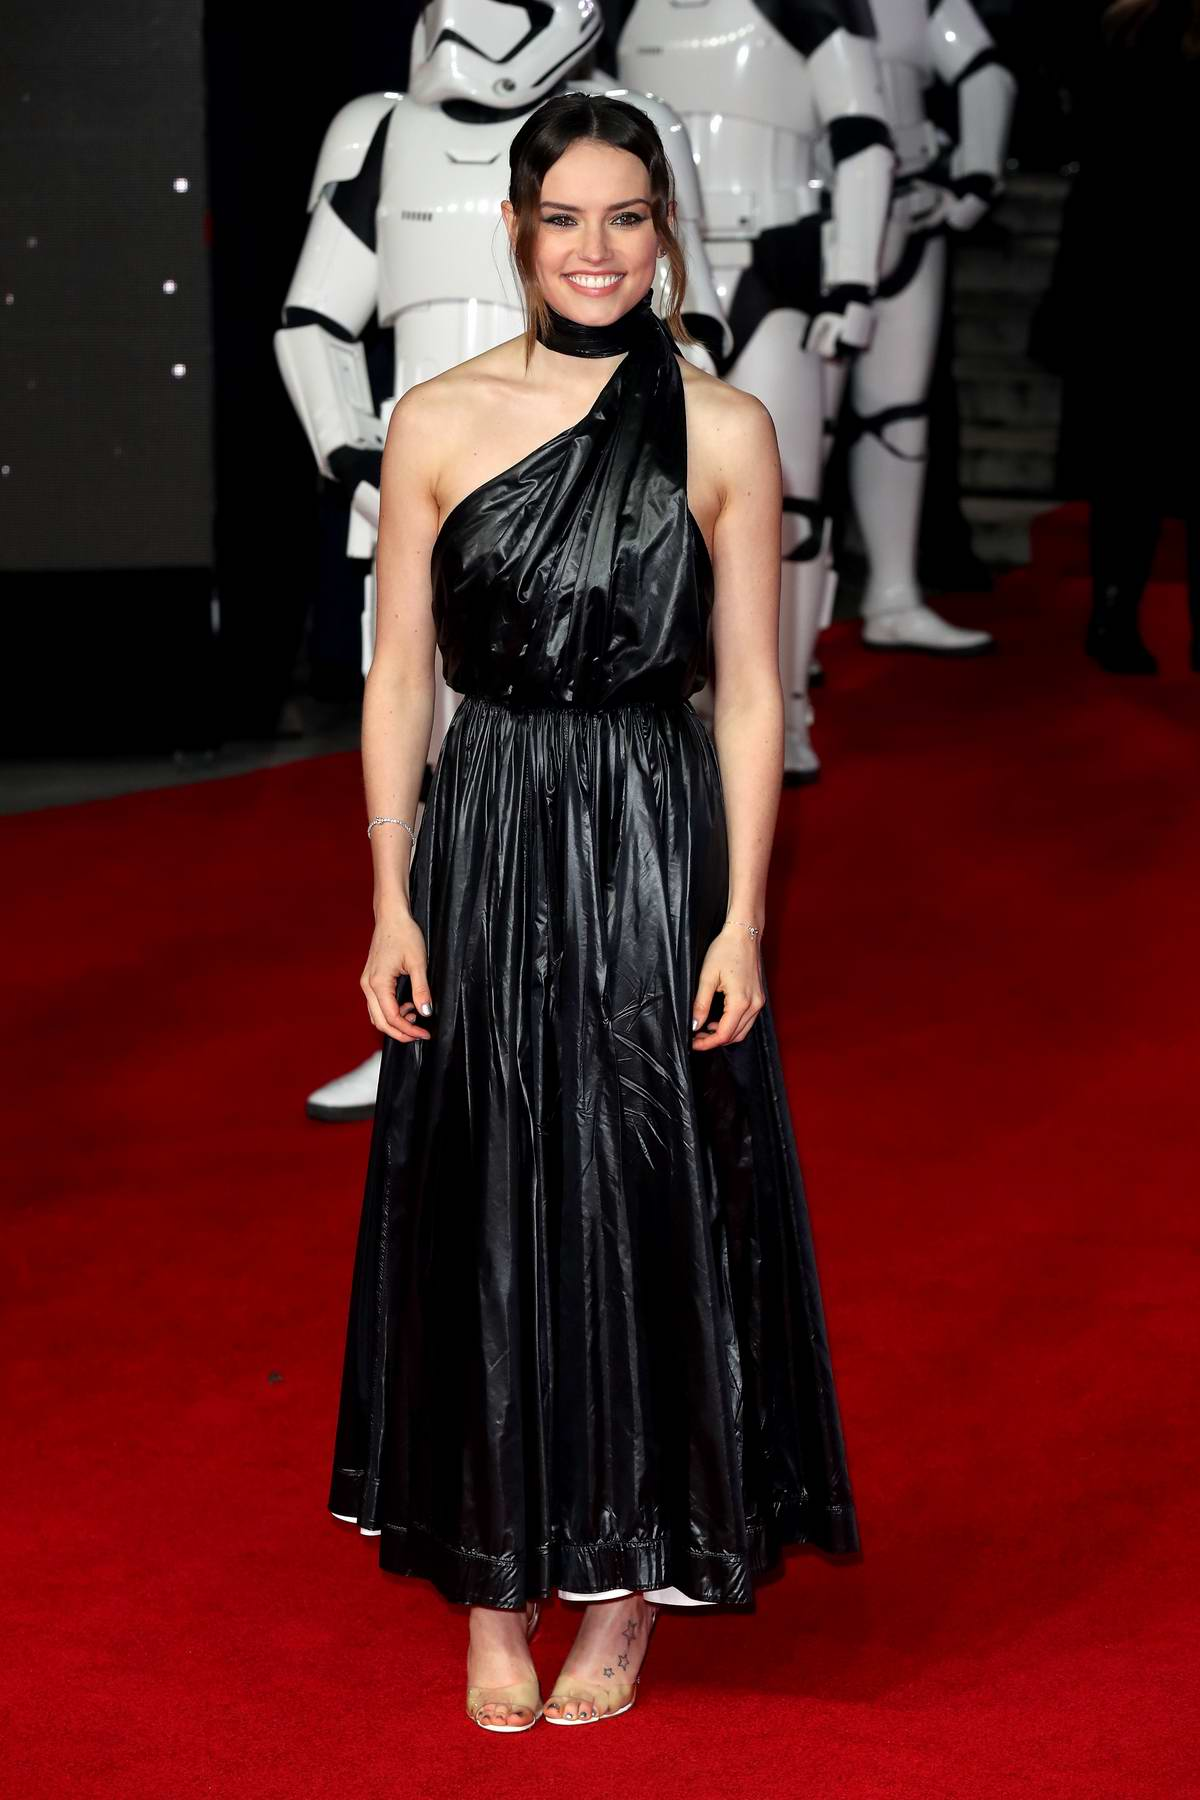 Daisy Ridley attends the European Premiere of 'Star Wars: The Last Jedi' at Royal Albert Hall in London